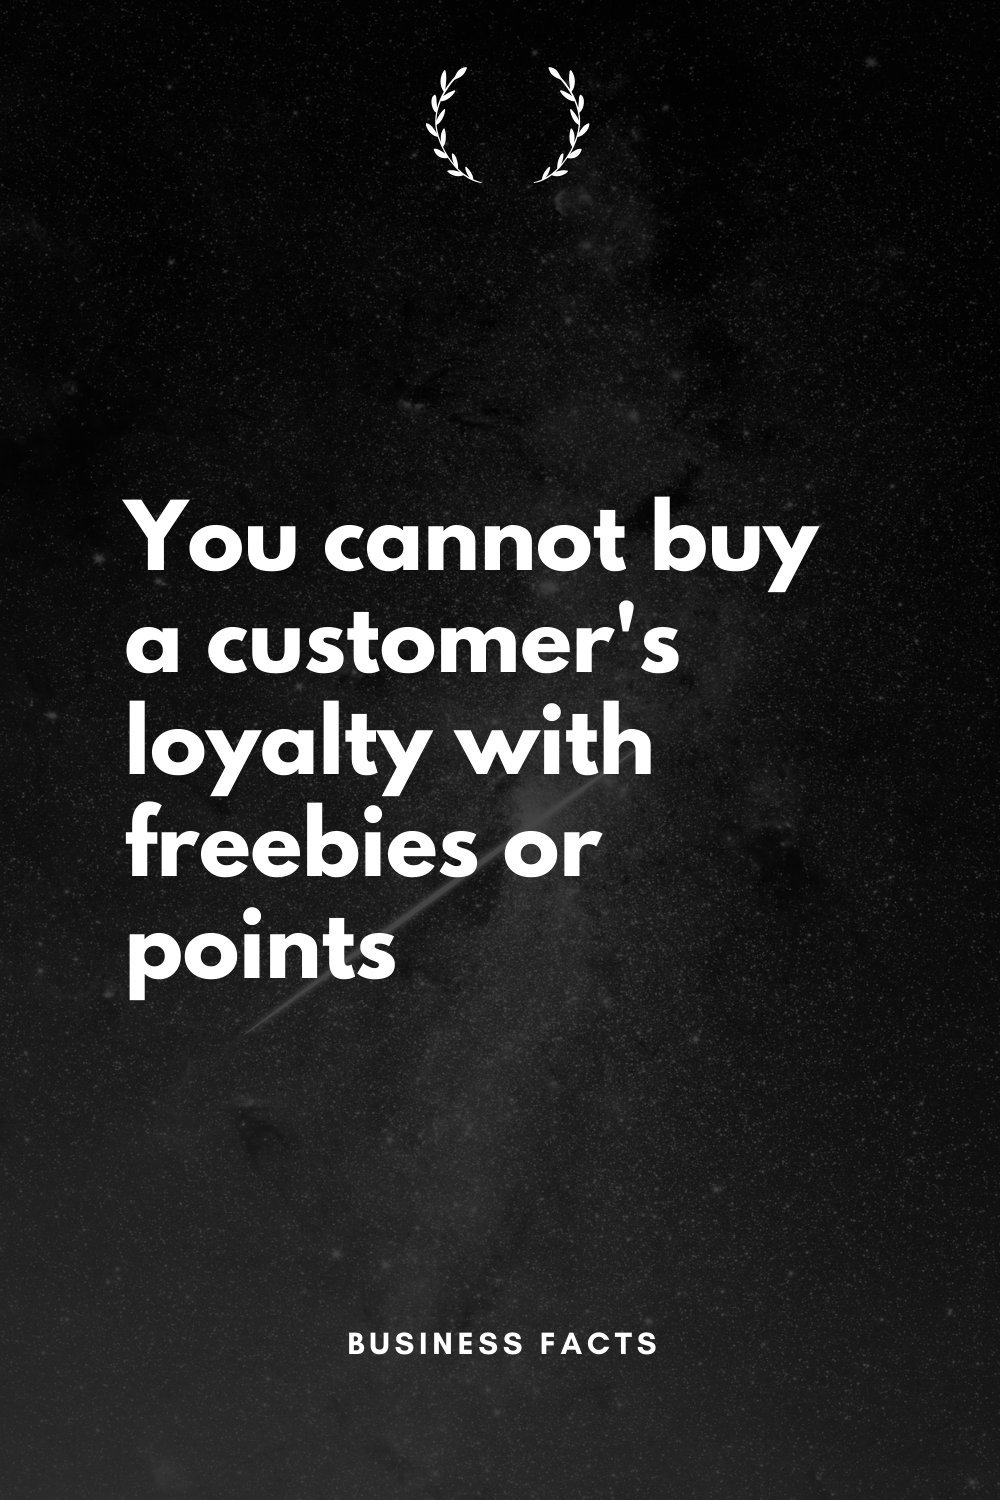 Business Facts On Instagram You Cannot Buy Customer Loyalty Loyalty Points Will Work Only If Y Startup Quotes Customer Service Quotes Human Resources Quotes